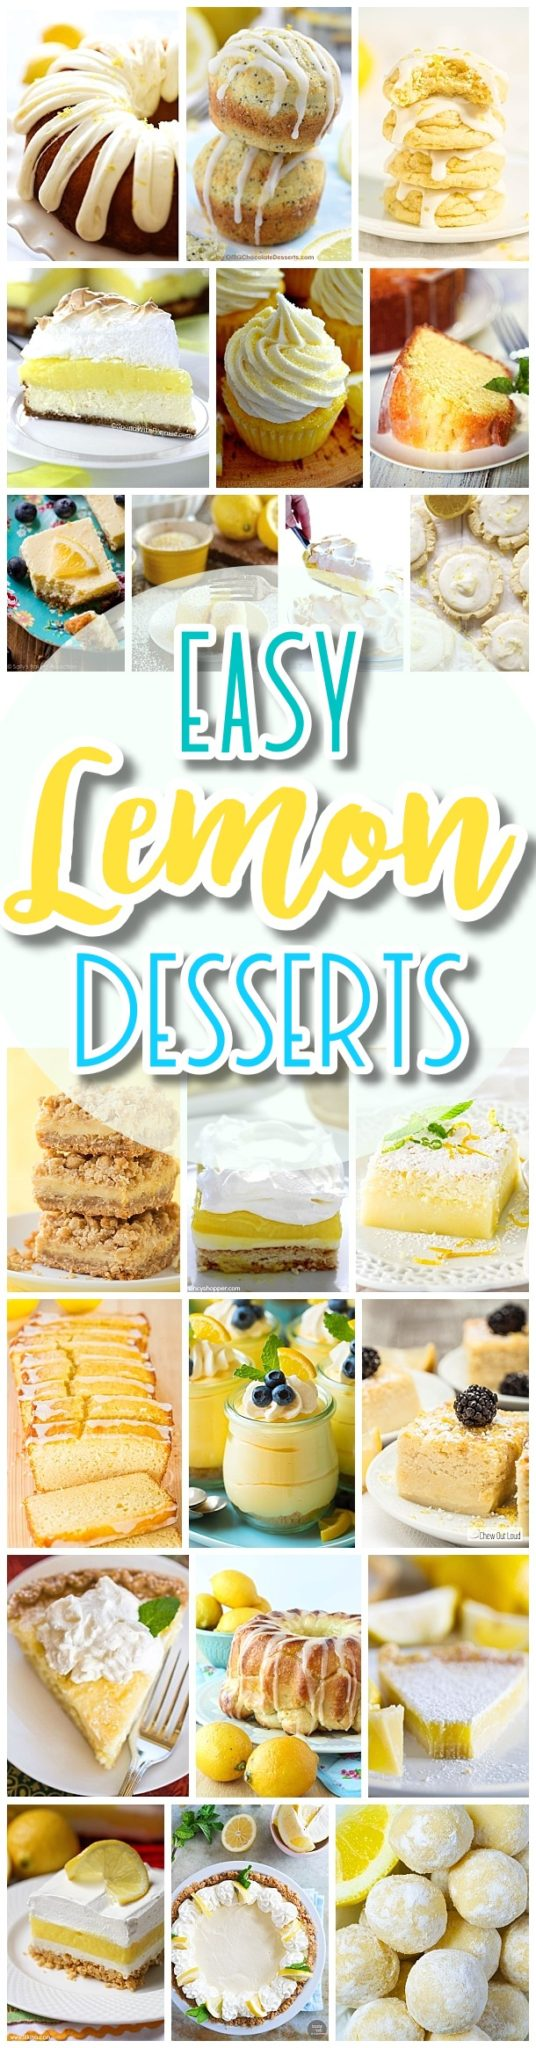 The BEST Easy Lemon Desserts and Treats Recipes - Perfect For Easter, Mother's Day Brunch, Bridal or Baby Showers and Pretty Spring and Summer Holiday Party Refreshments - Dreaming in DIY - The BEST Easy DIY Mother's Day Gifts and Treats Ideas - Holiday Craft Activity Projects, Free Printables and Favorite Brunch Desserts Recipes for Moms and Grandmas